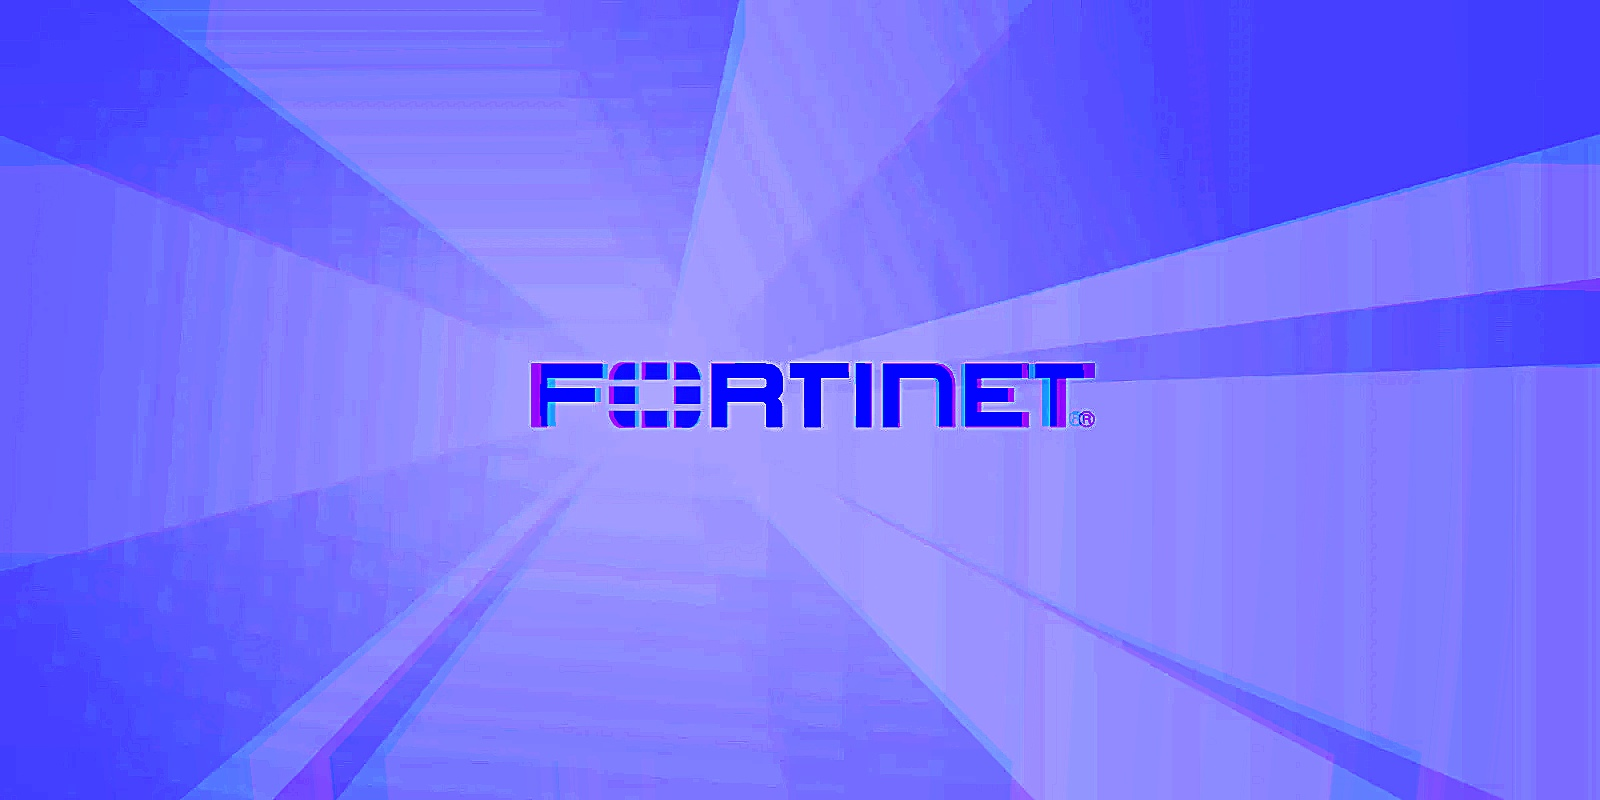 Fortinet patches bug letting attackers takeover servers remotely